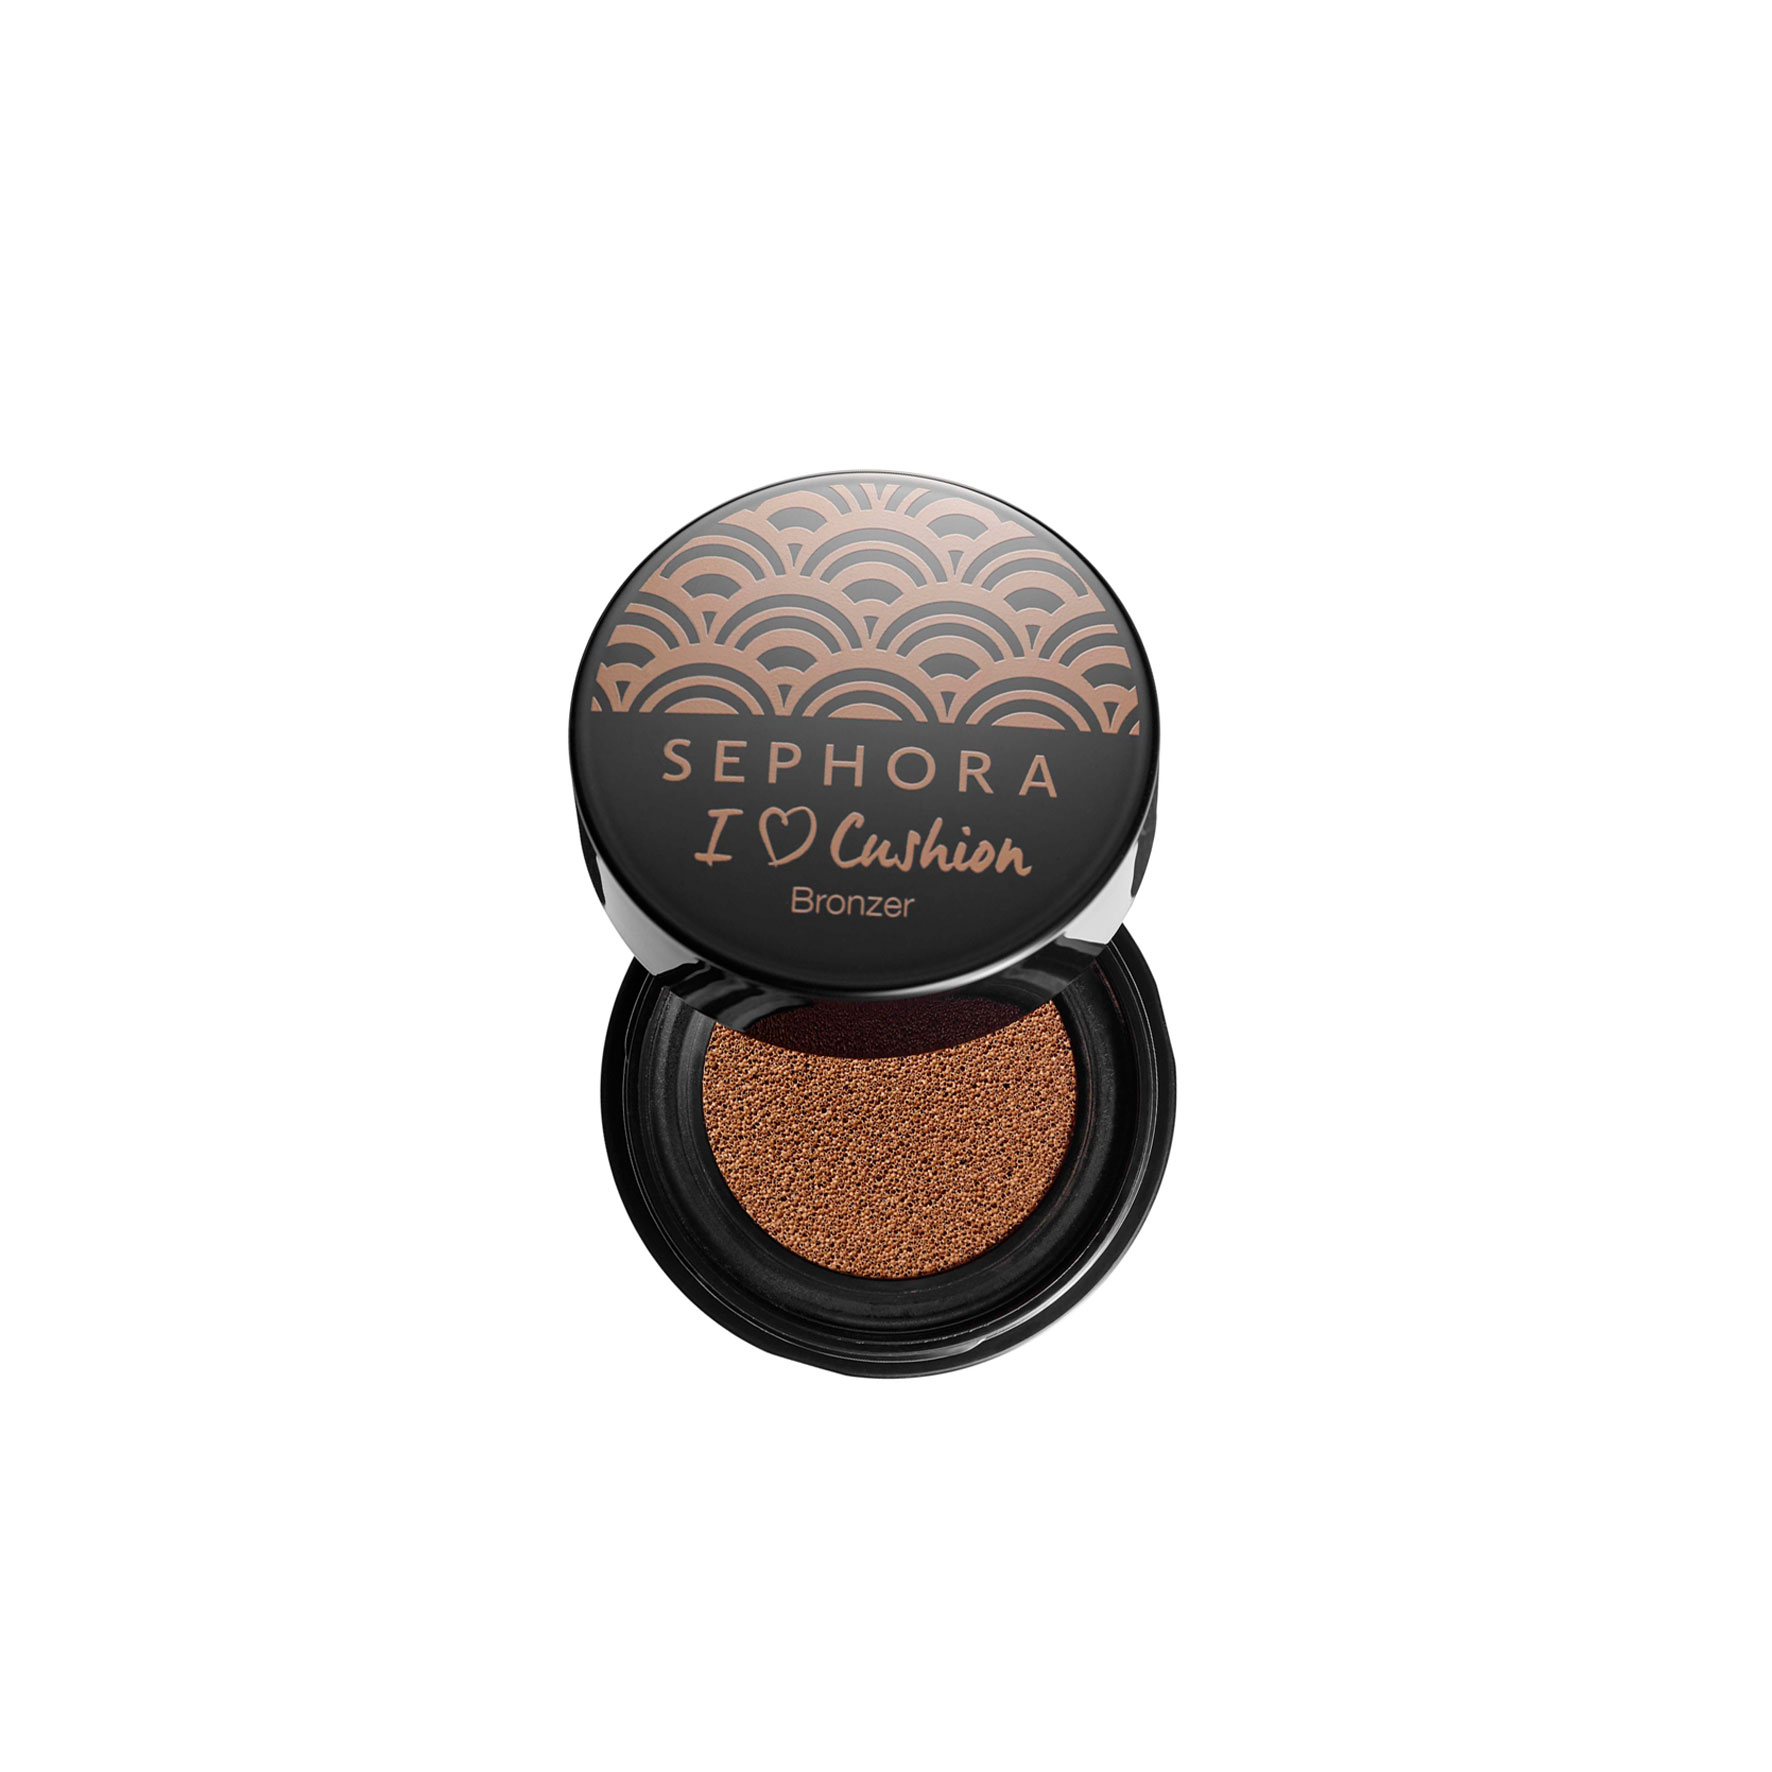 bronzant-coussine-i-love-cushion-bronzer-natural-finish-de-sephora-2